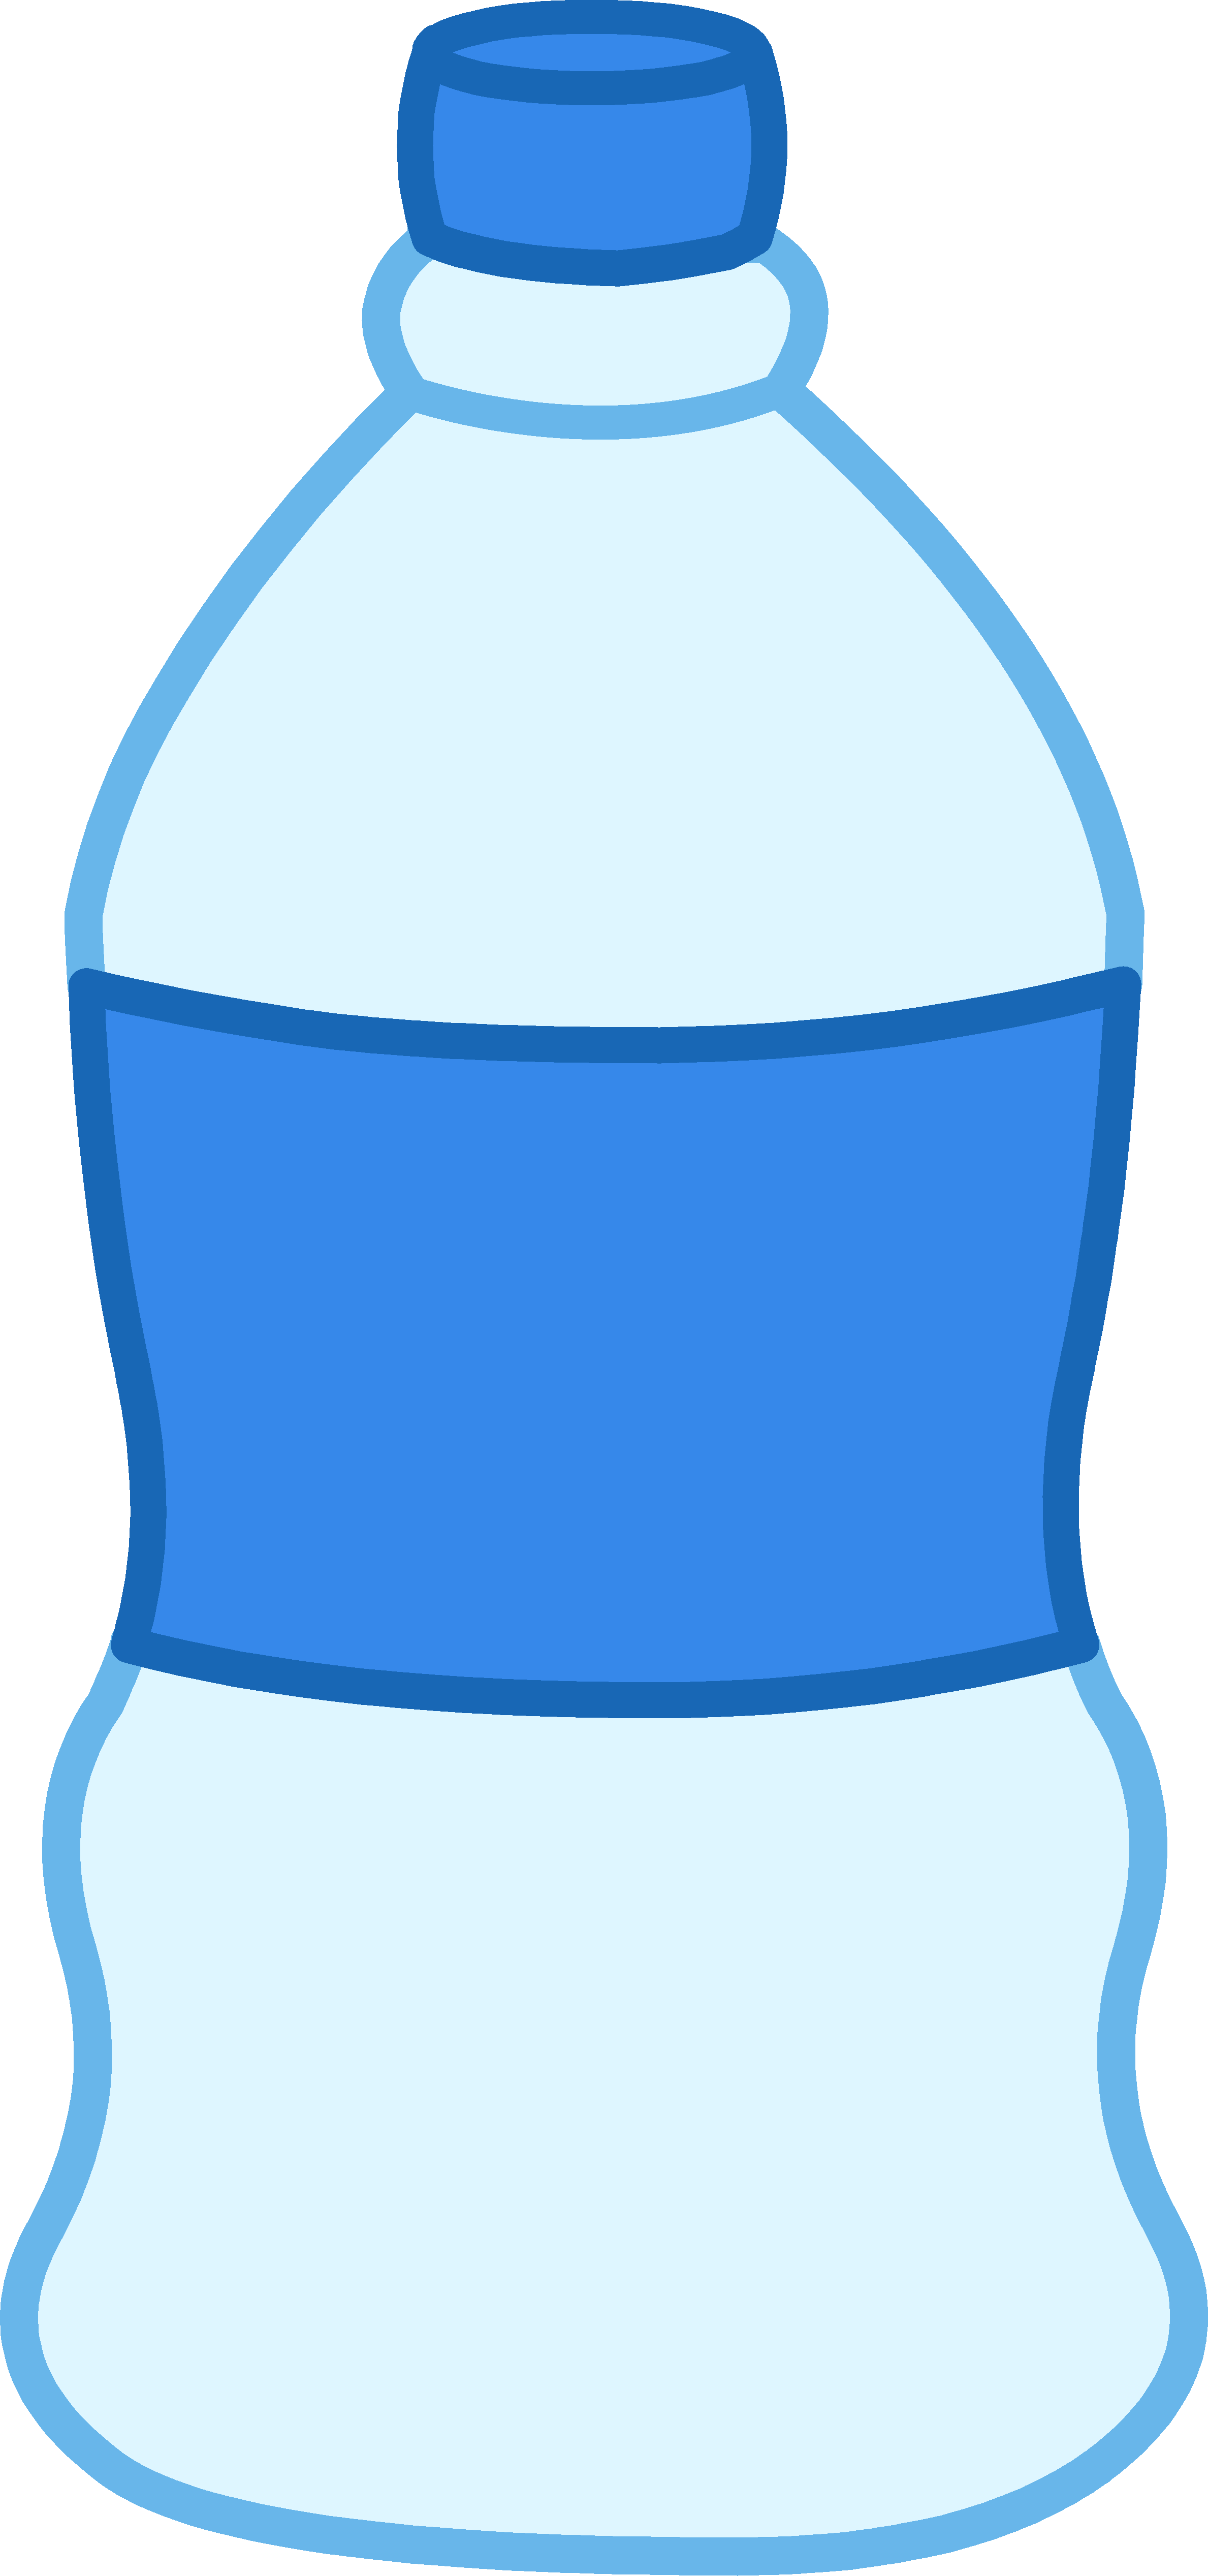 Bottle images free clipart picture freeuse library Free Water Bottles Cliparts, Download Free Clip Art, Free Clip Art ... picture freeuse library